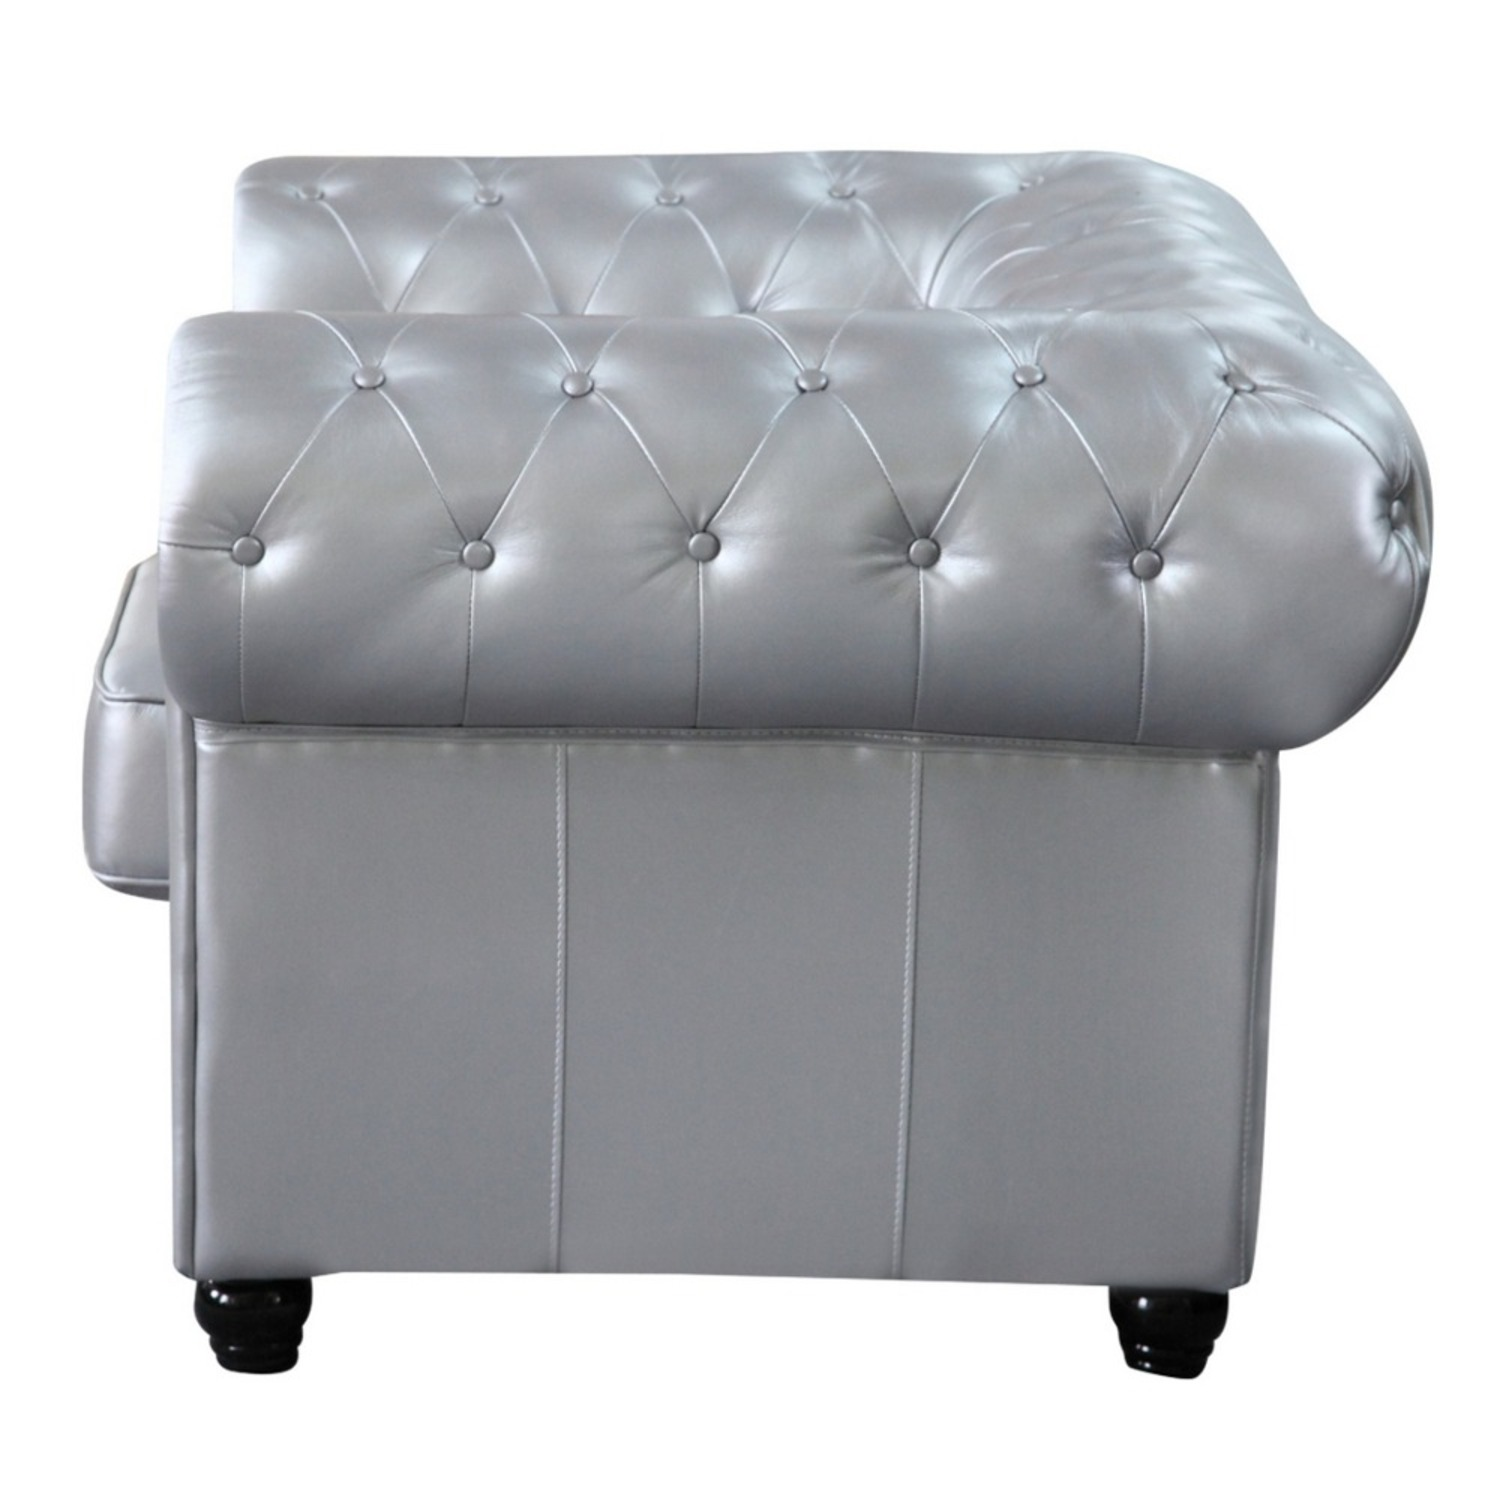 Modern Chair In Soft Silver Leatherette - image-3